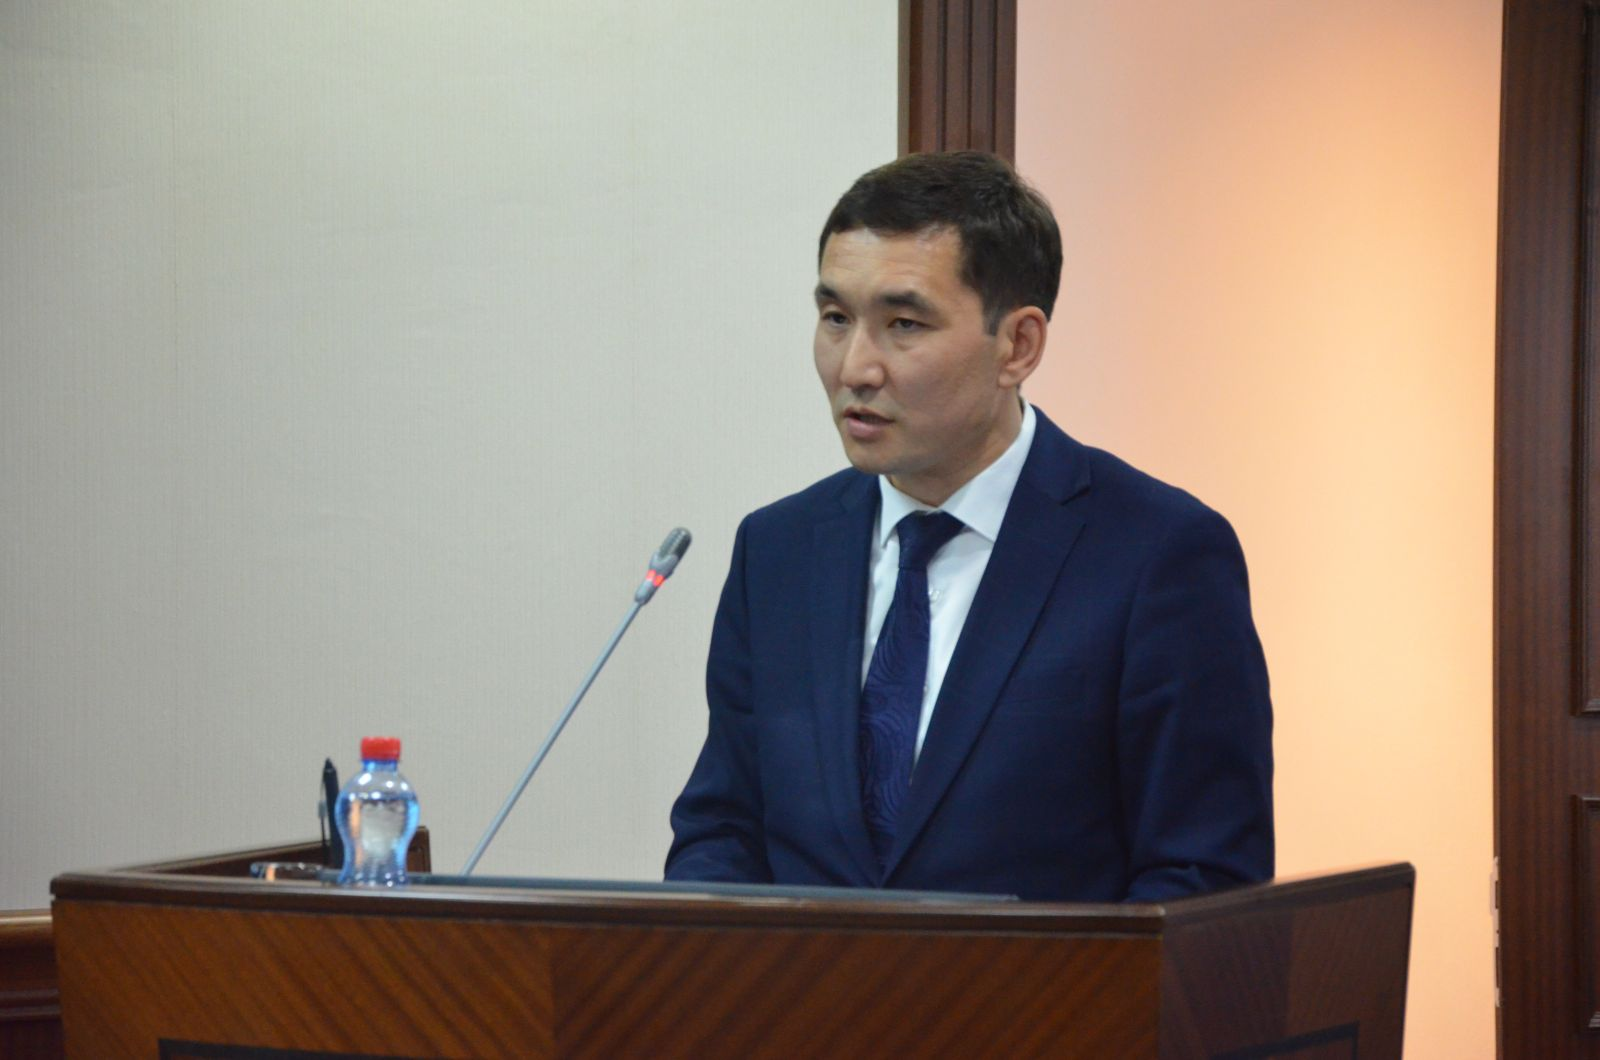 A farmer buys machinery, like he's getting married, once for life. They don't turn it in for recycling - the deputy chairman of the farmers' union of Kazakhstan